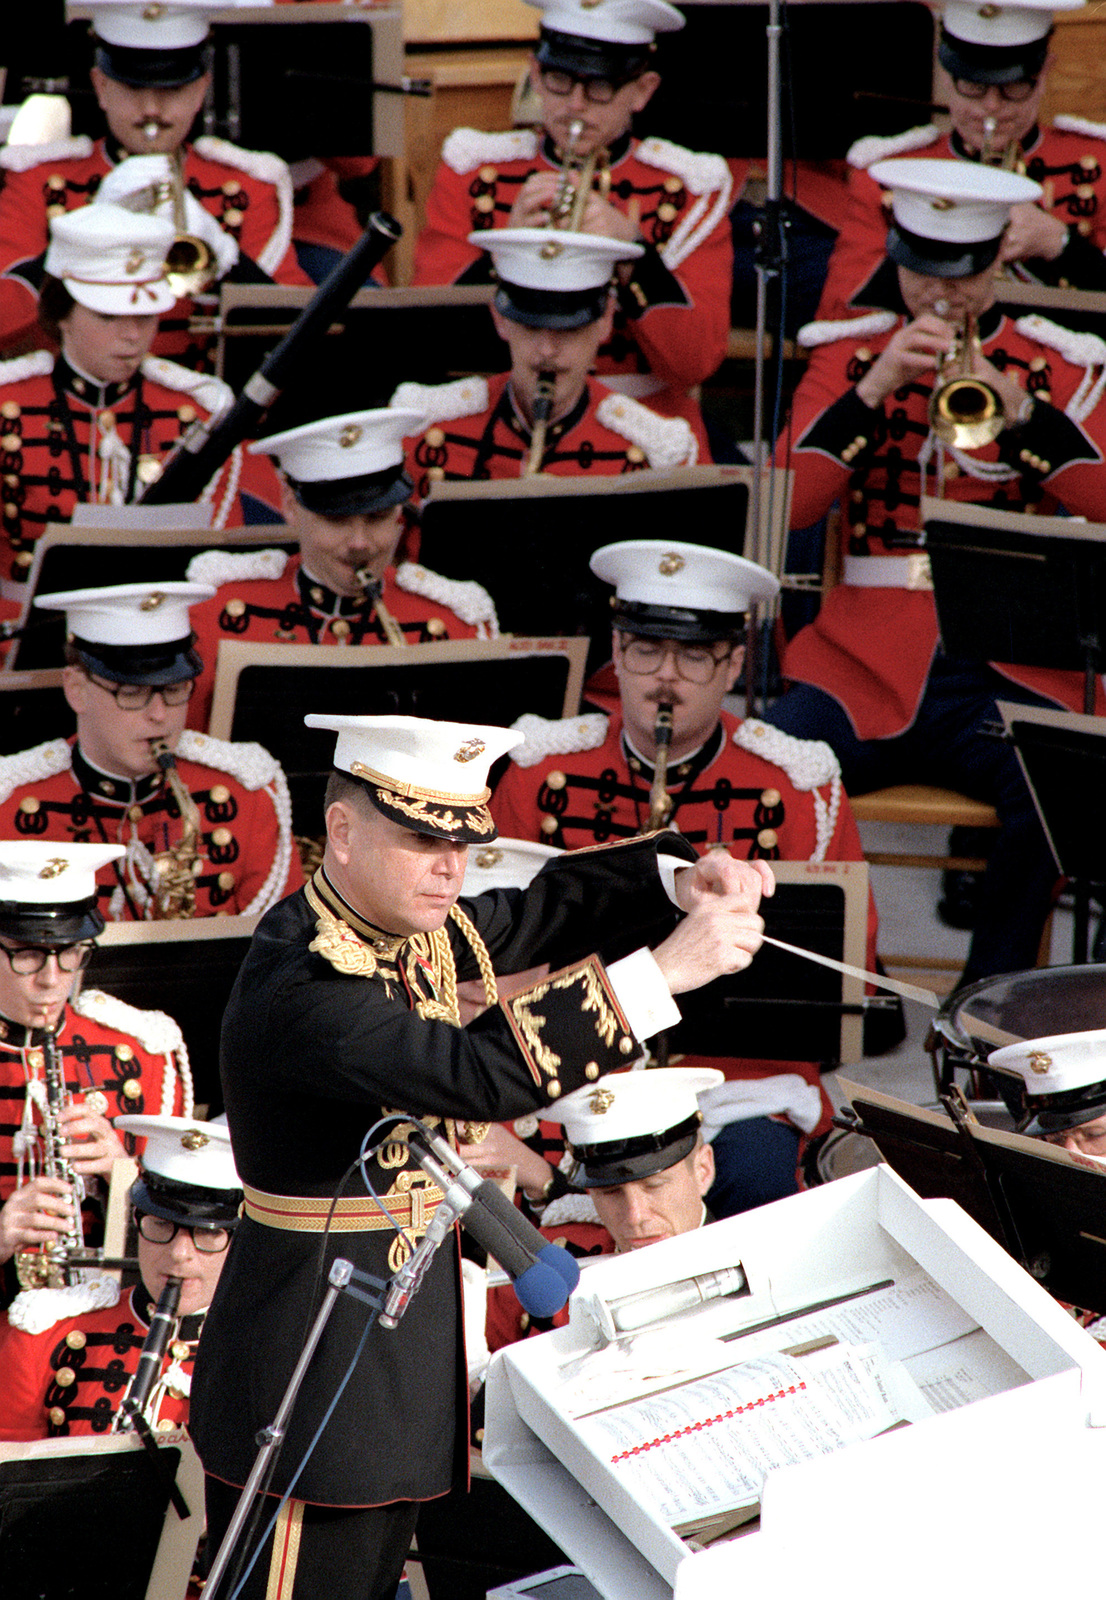 """The Marine Band, """"The President's Own, directed by LTC John Bourgeois, plays at the U.S. Capitol on Inauguration Day"""